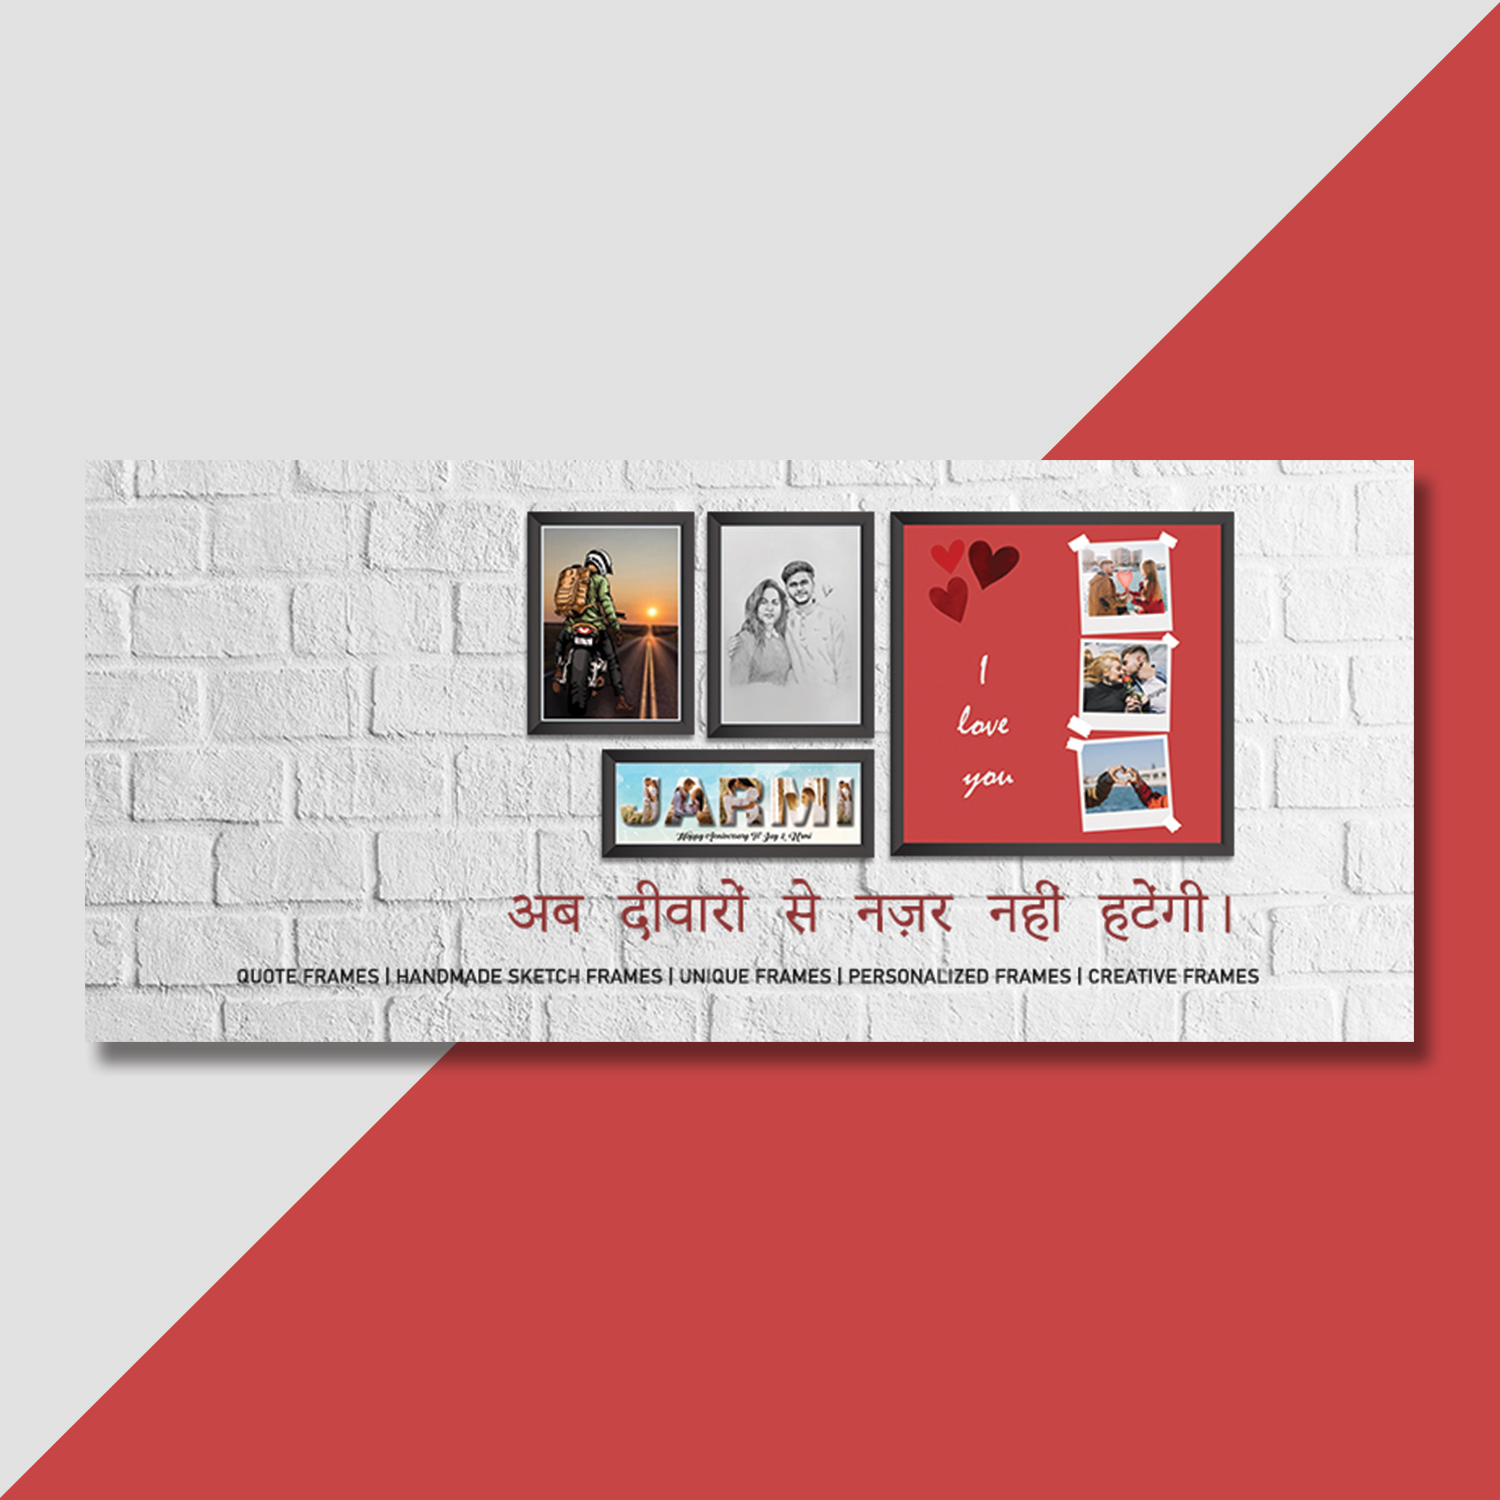 Web banner design for frame ecommerce website by Badri design